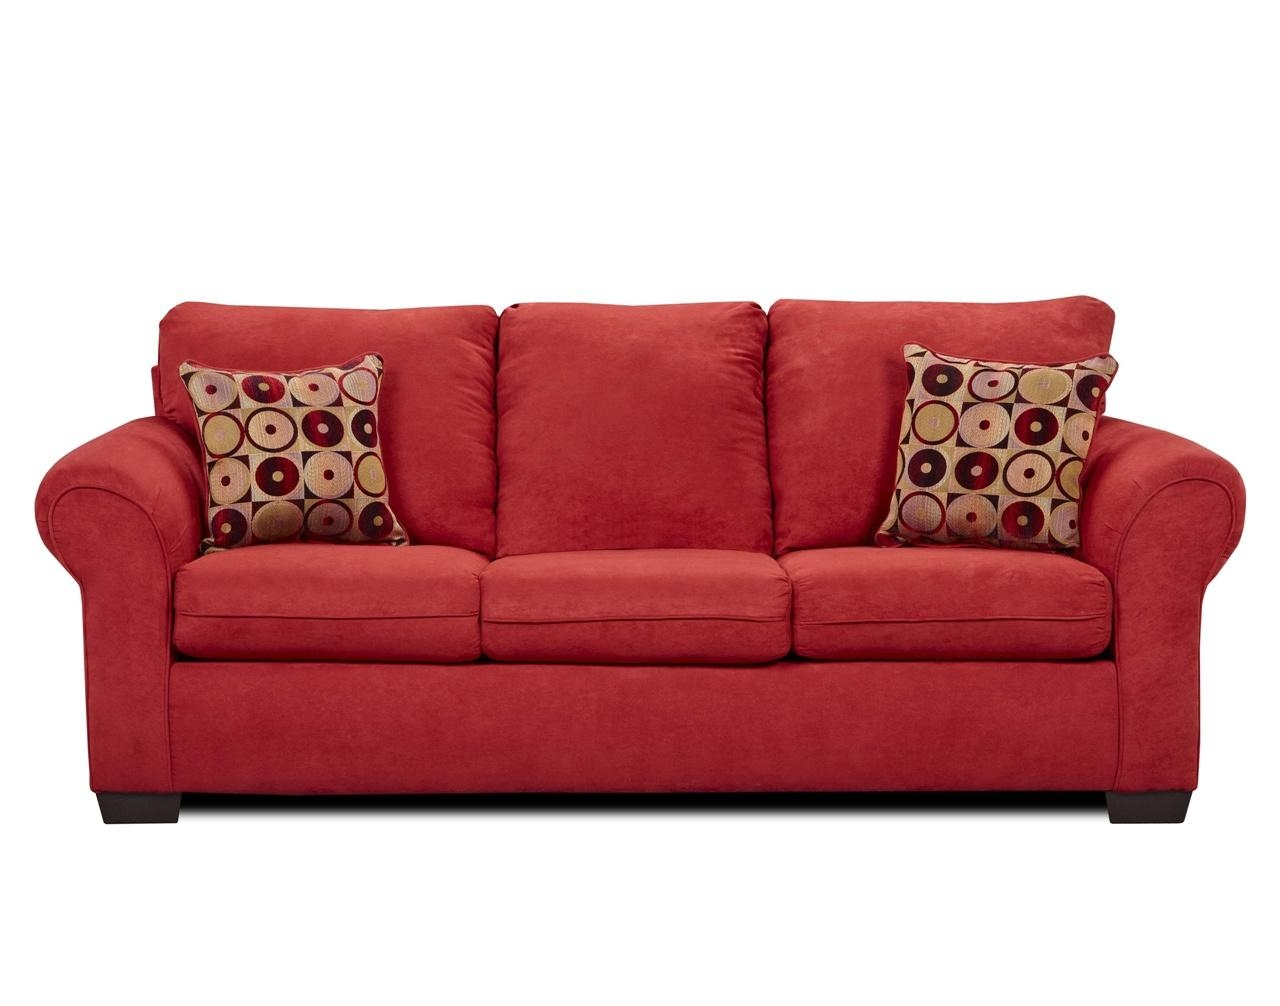 Combination Leather And Fabric Sofas – Leather Sectional Sofa In Leather And Cloth Sofa (View 7 of 20)